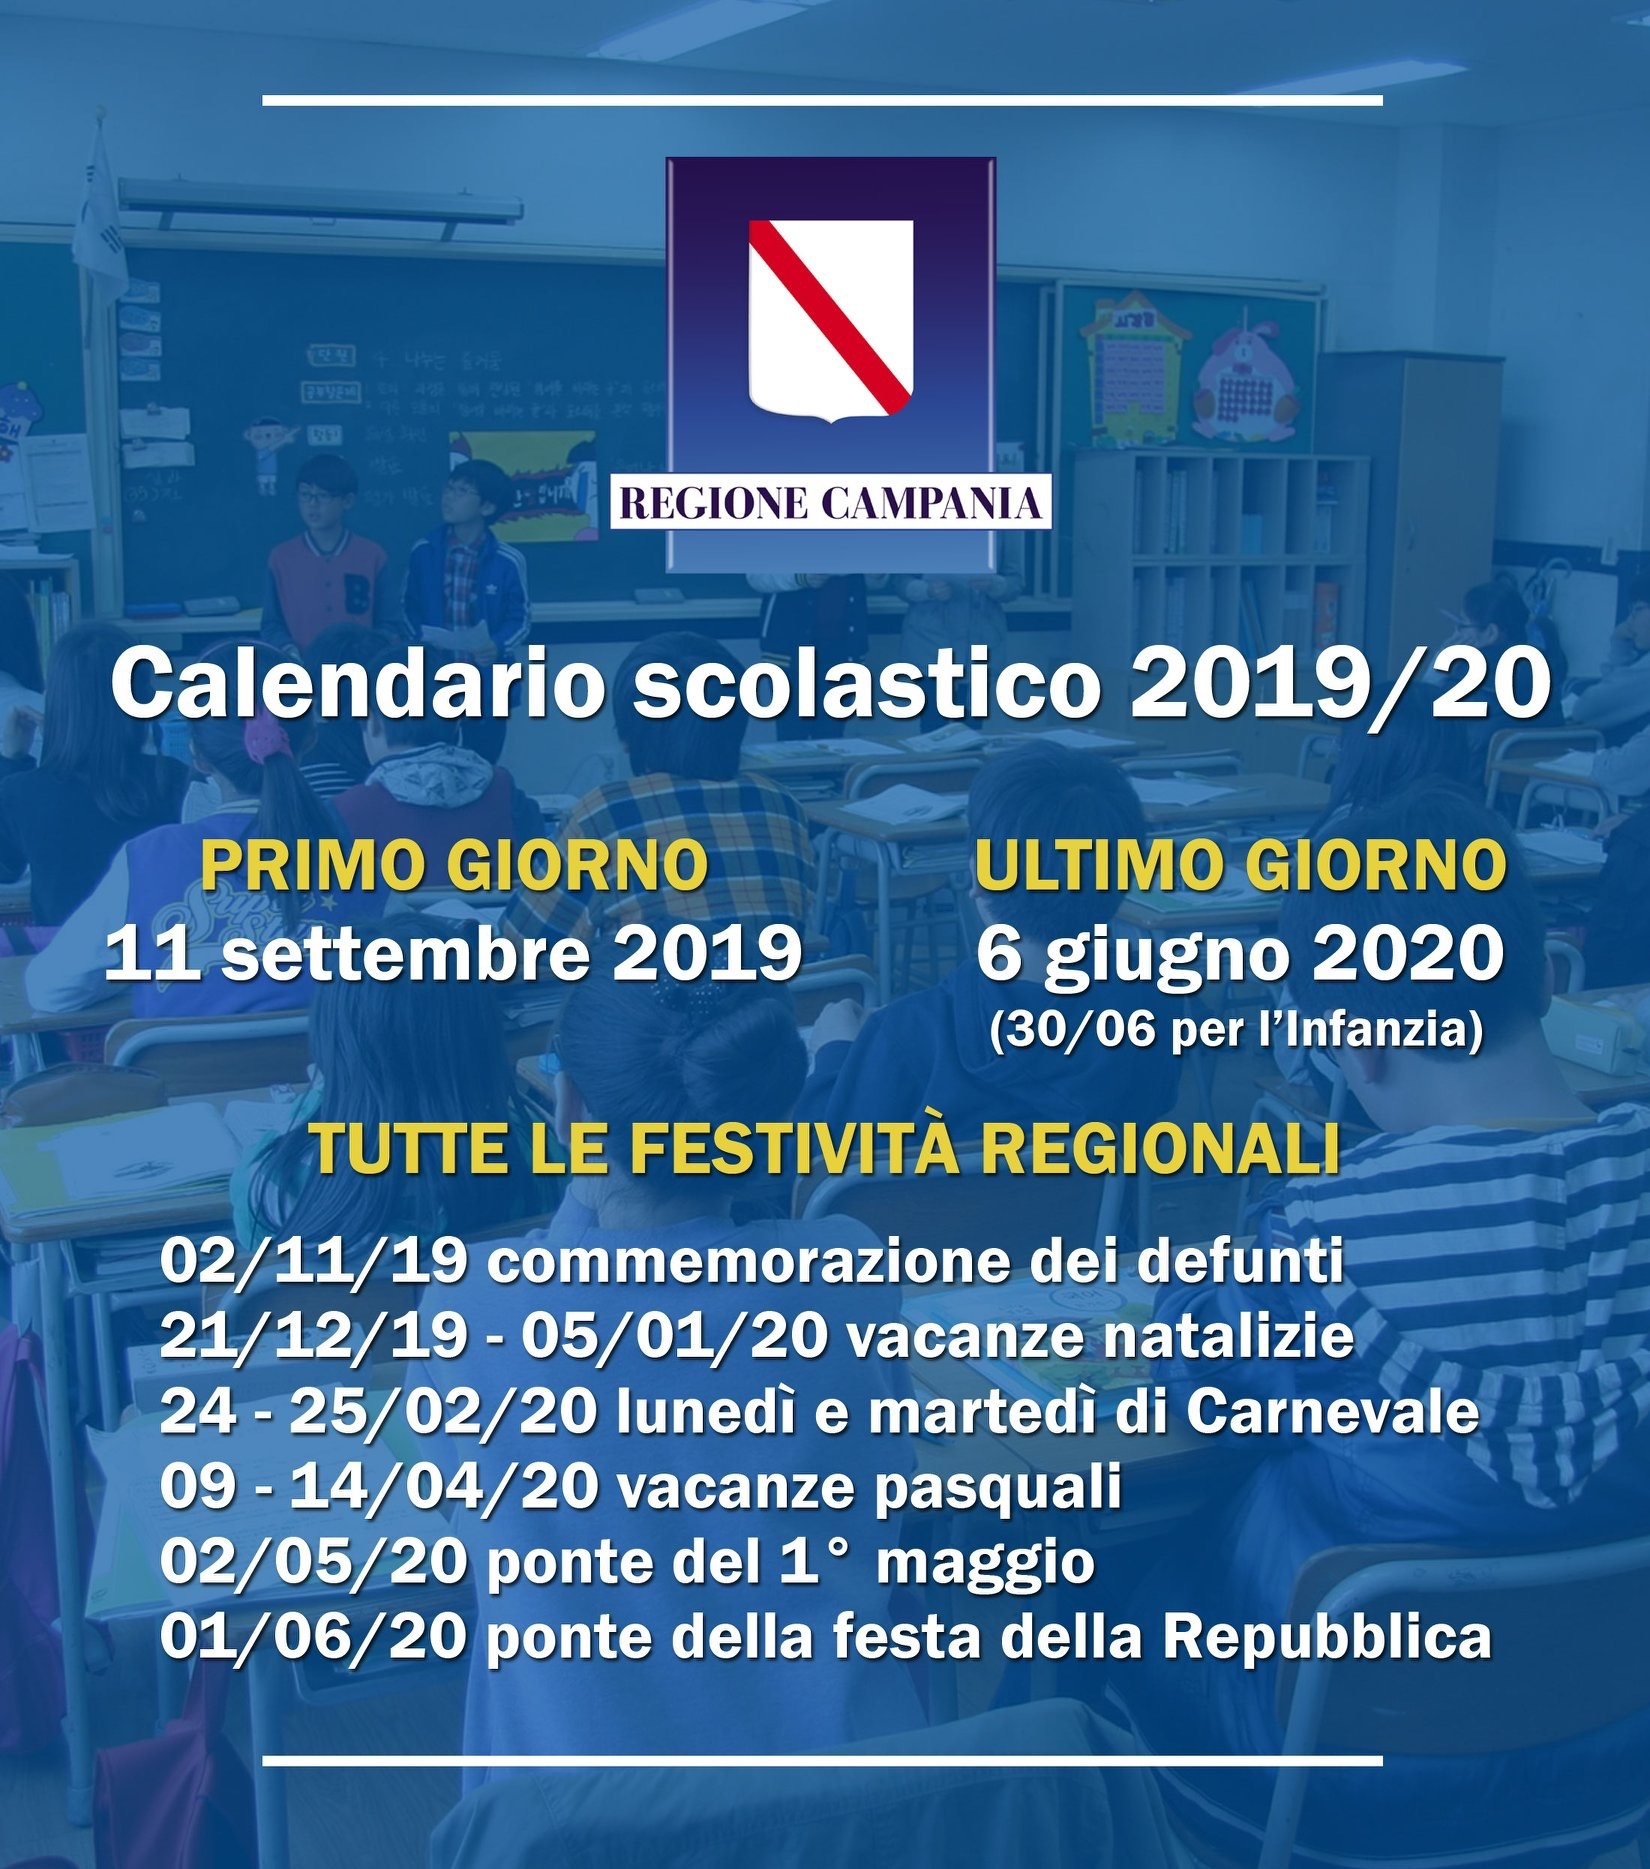 Calendario Fiere Elettronica 2020.Calendario Scolastico 2020 21 Campania Calendario 2020